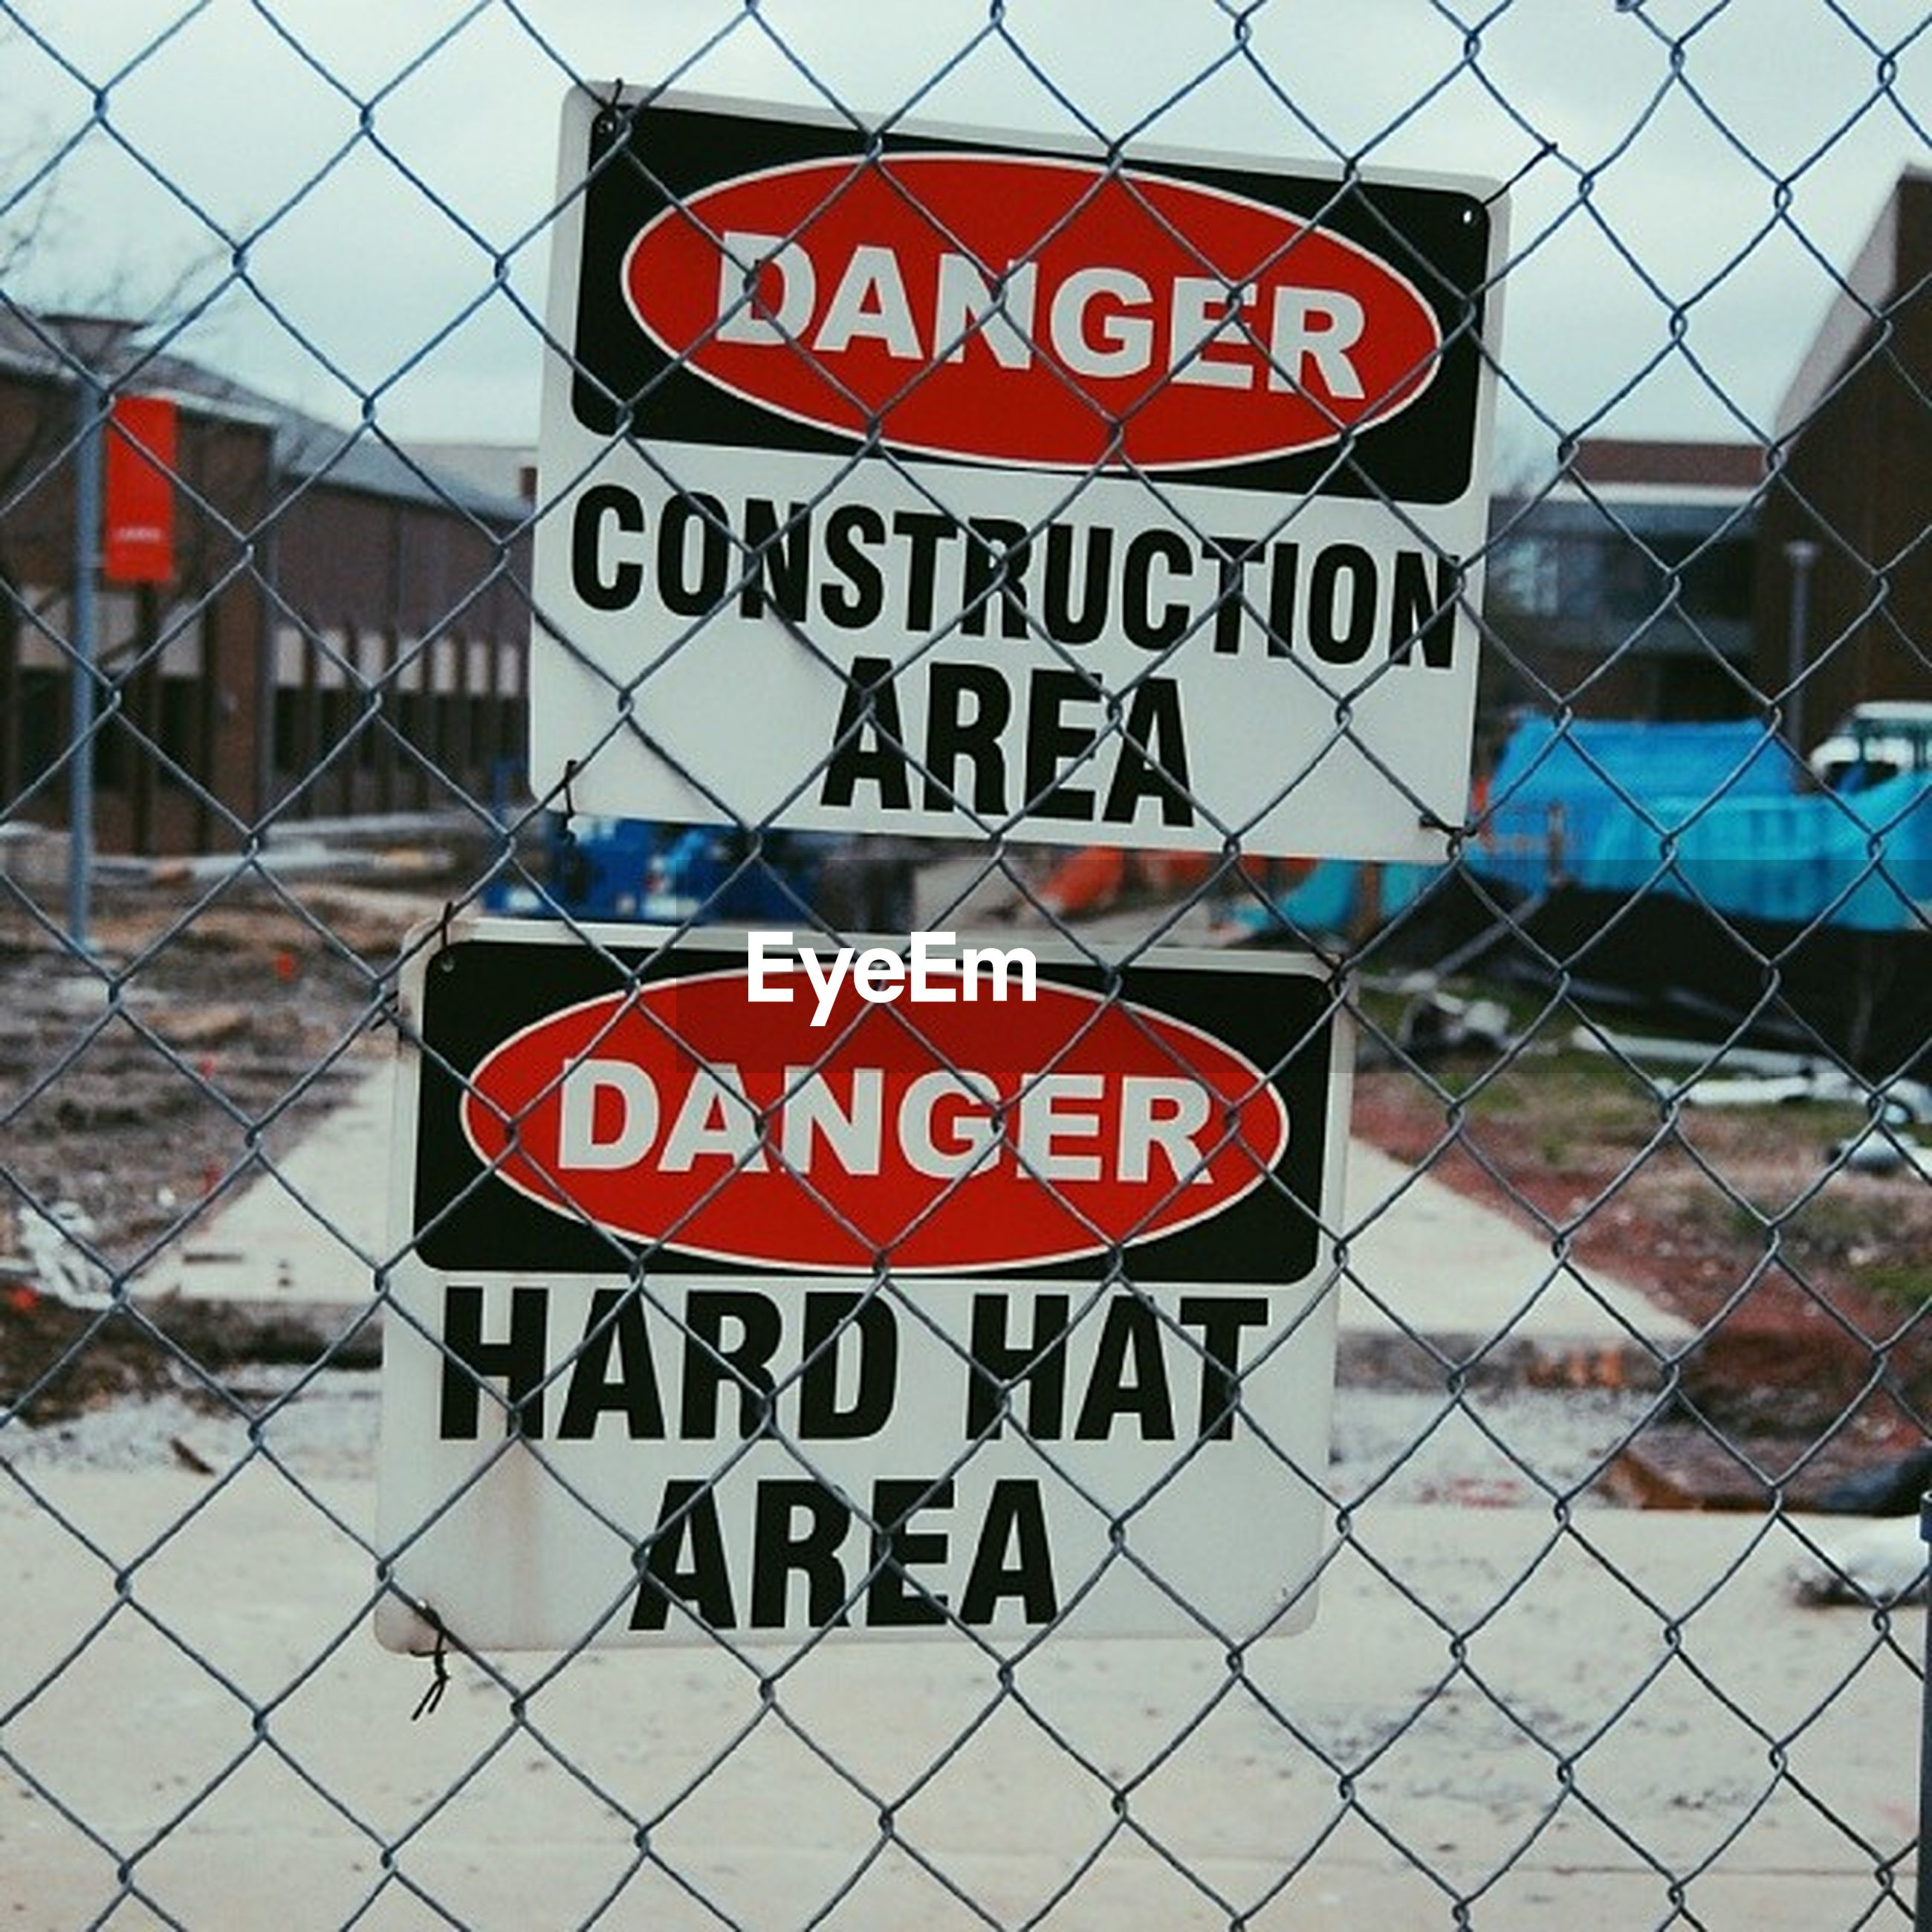 text, western script, communication, chainlink fence, information sign, capital letter, information, warning sign, non-western script, safety, fence, sign, built structure, pattern, protection, architecture, metal, day, security, guidance